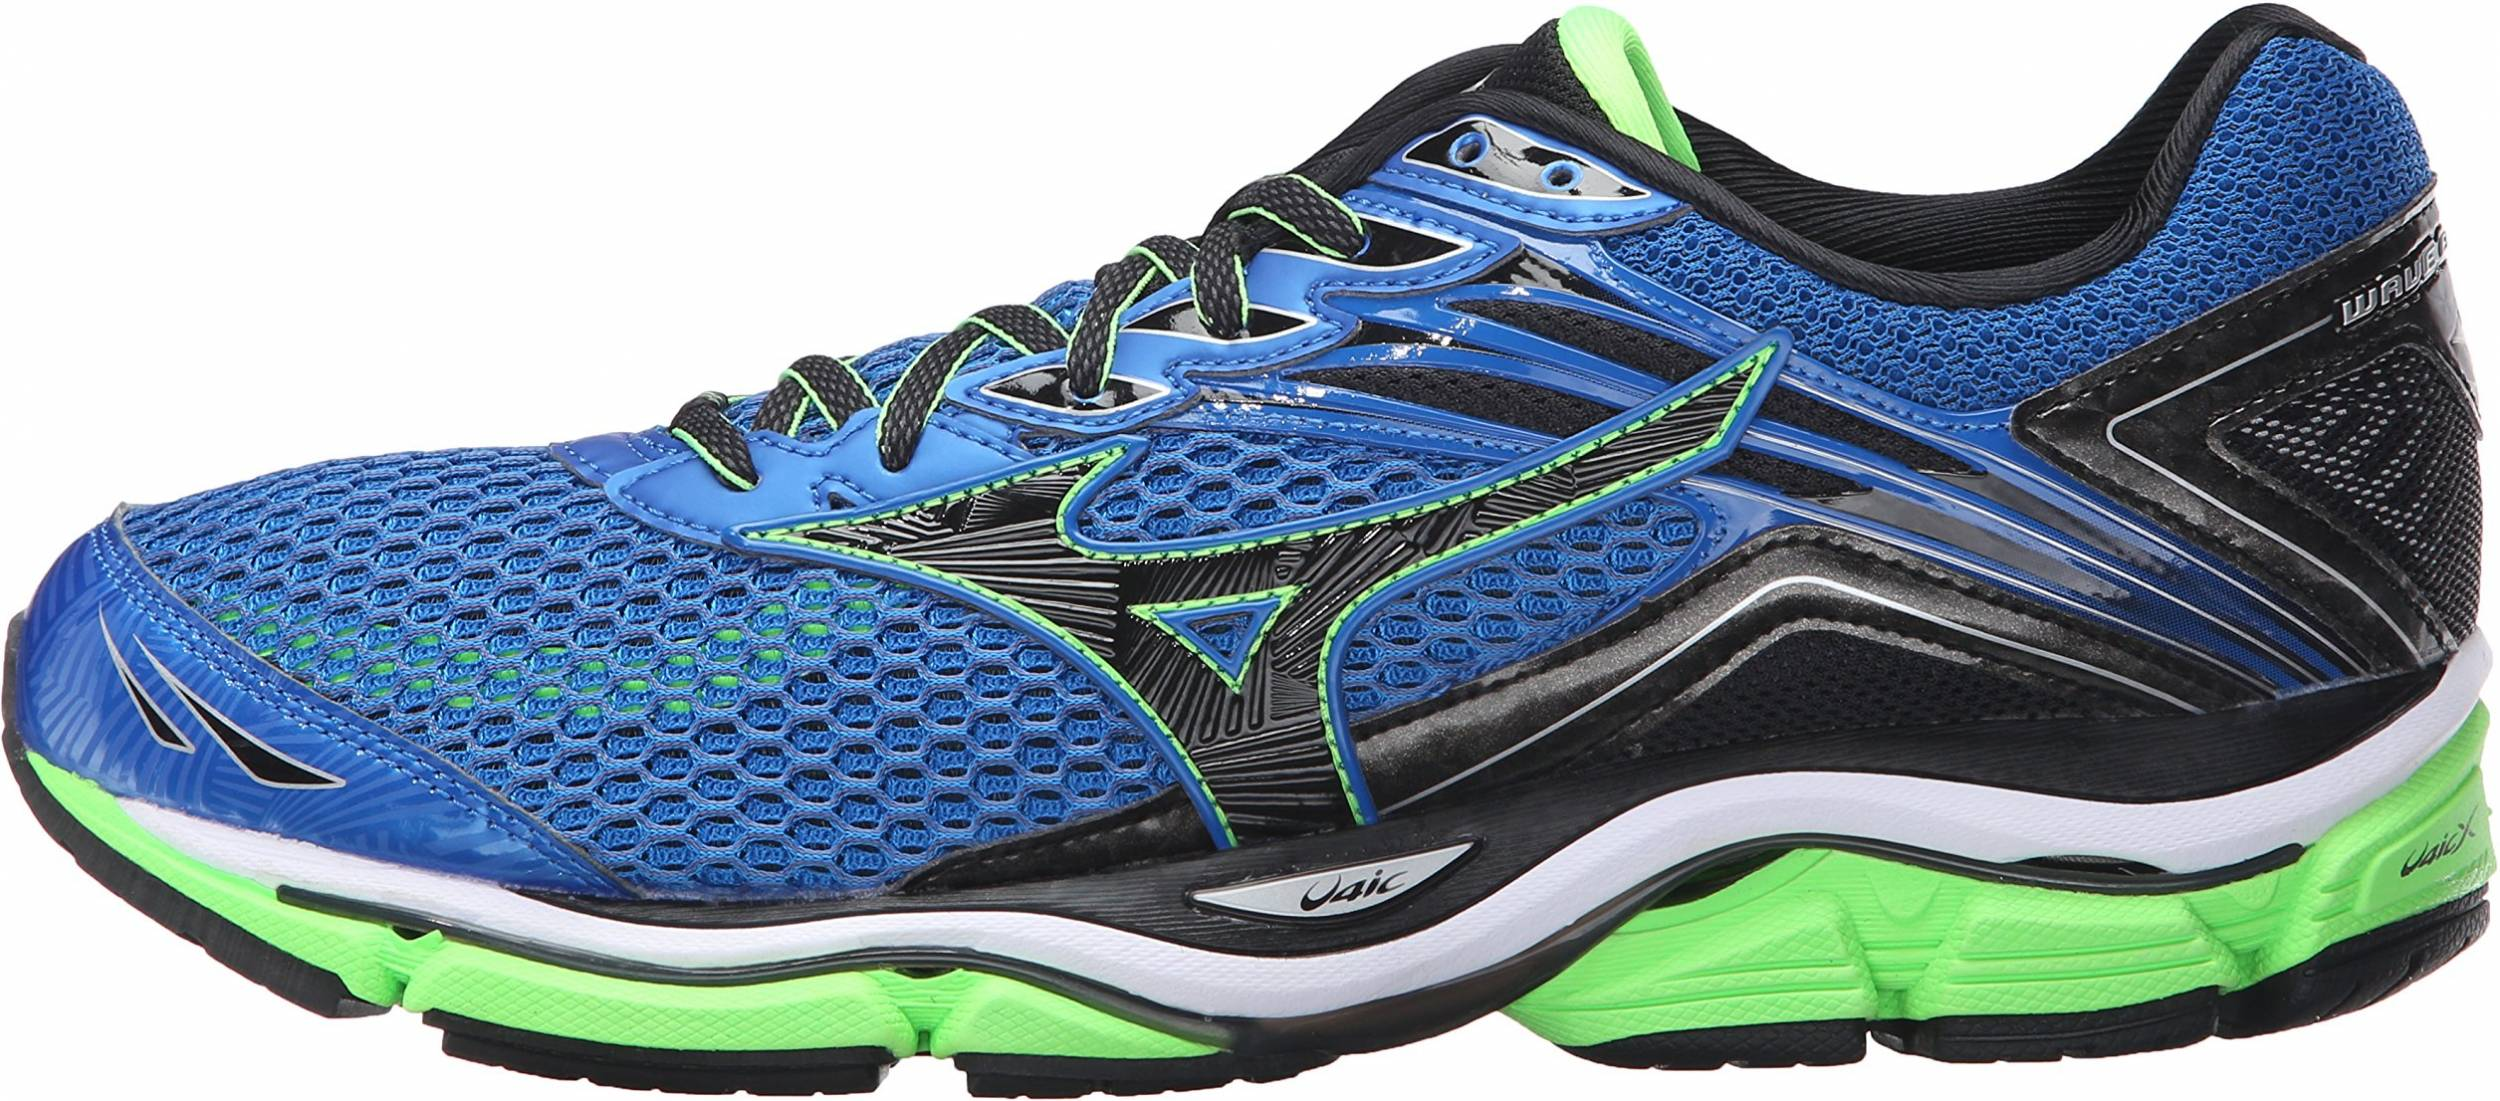 mizuno womens running shoes size 8.5 in europe or jersey